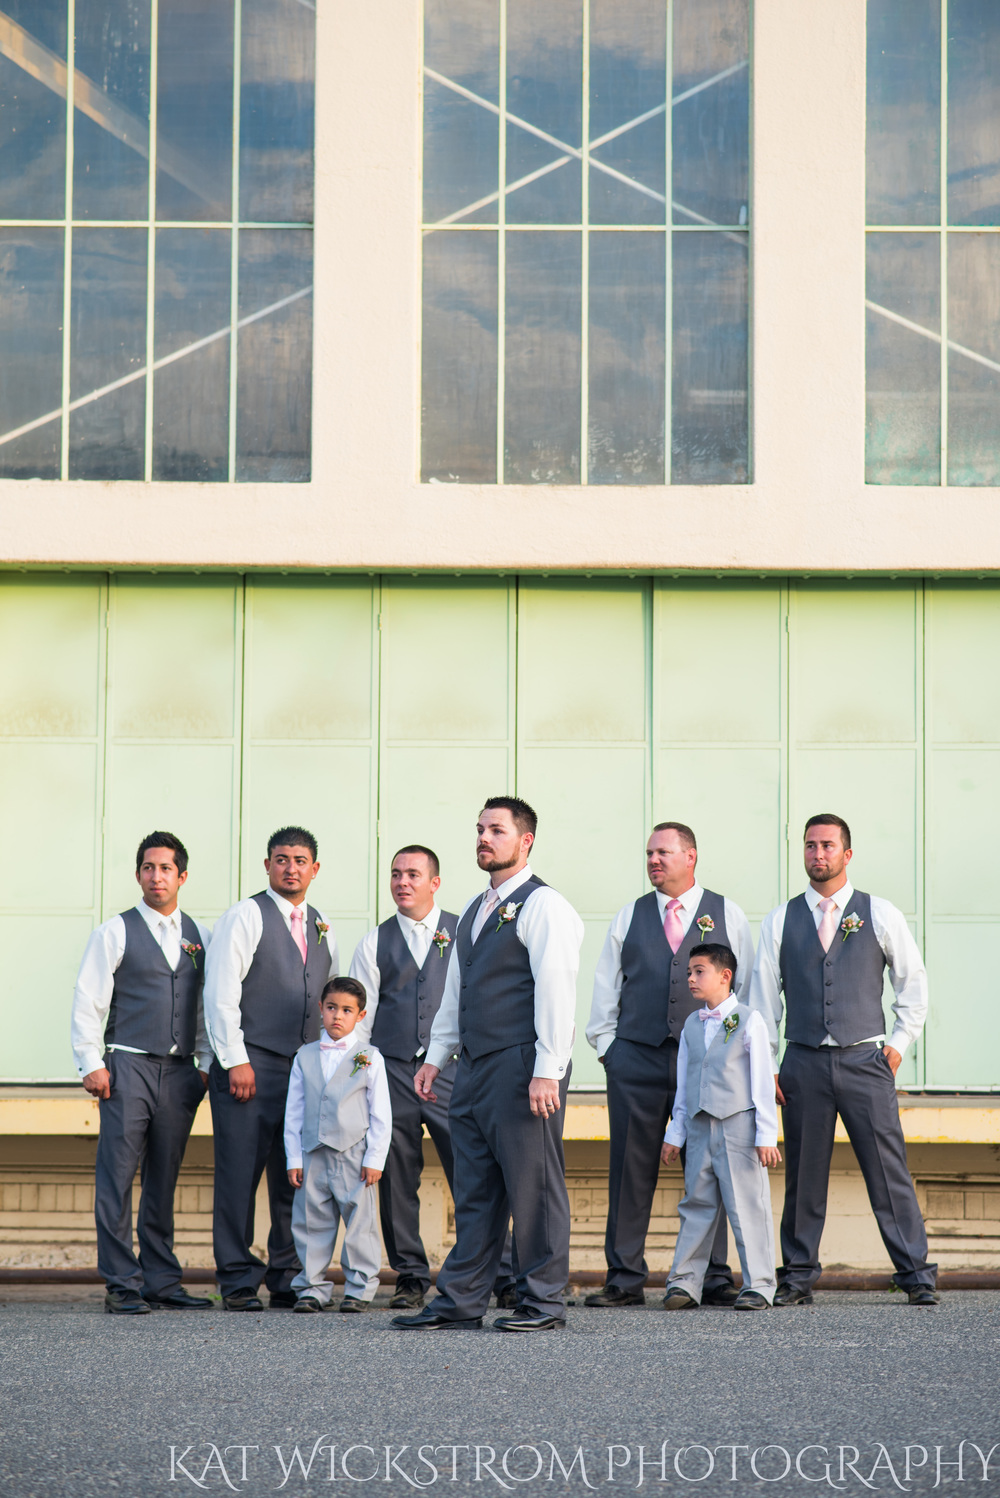 Look at these awesome groomsmen.